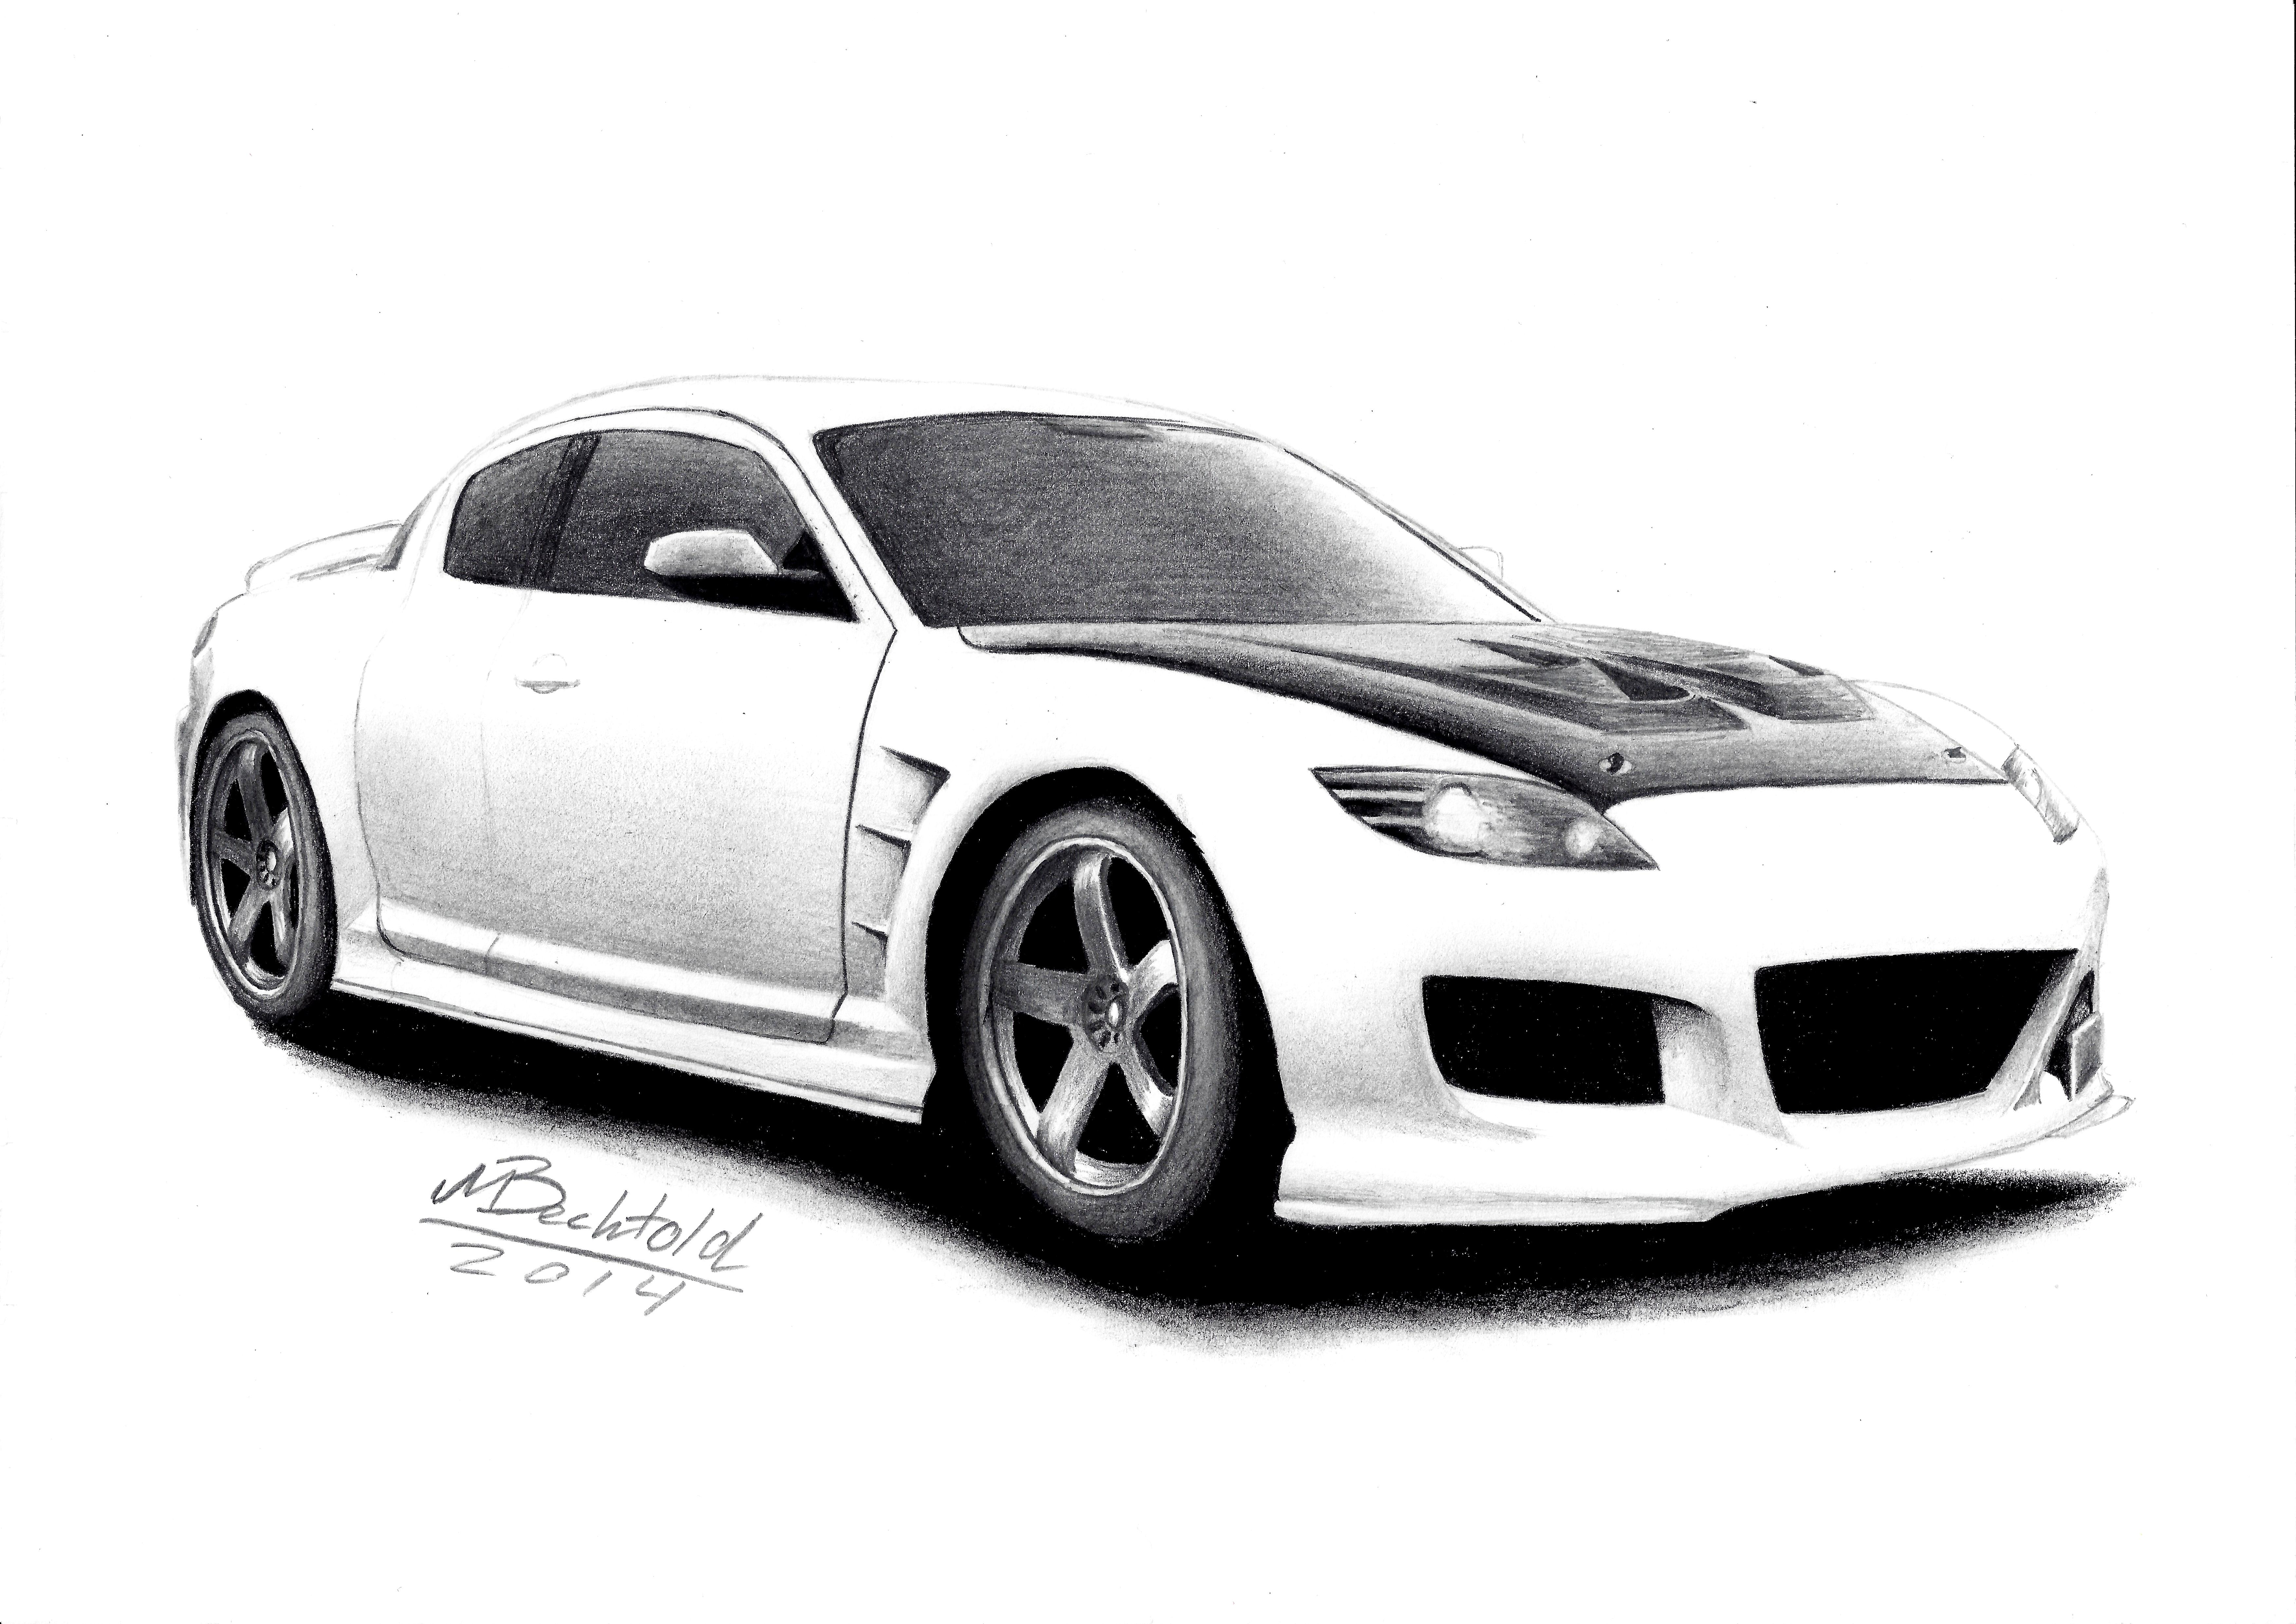 54370 Mazda Rx 7 Rocket Bunny Madmake in addition Mazda RX 8 JDM Tuned Tuning Realistic Car Drawing 467510419 additionally RX7 furthermore Watch further P1. on mazda rx 7 drawing